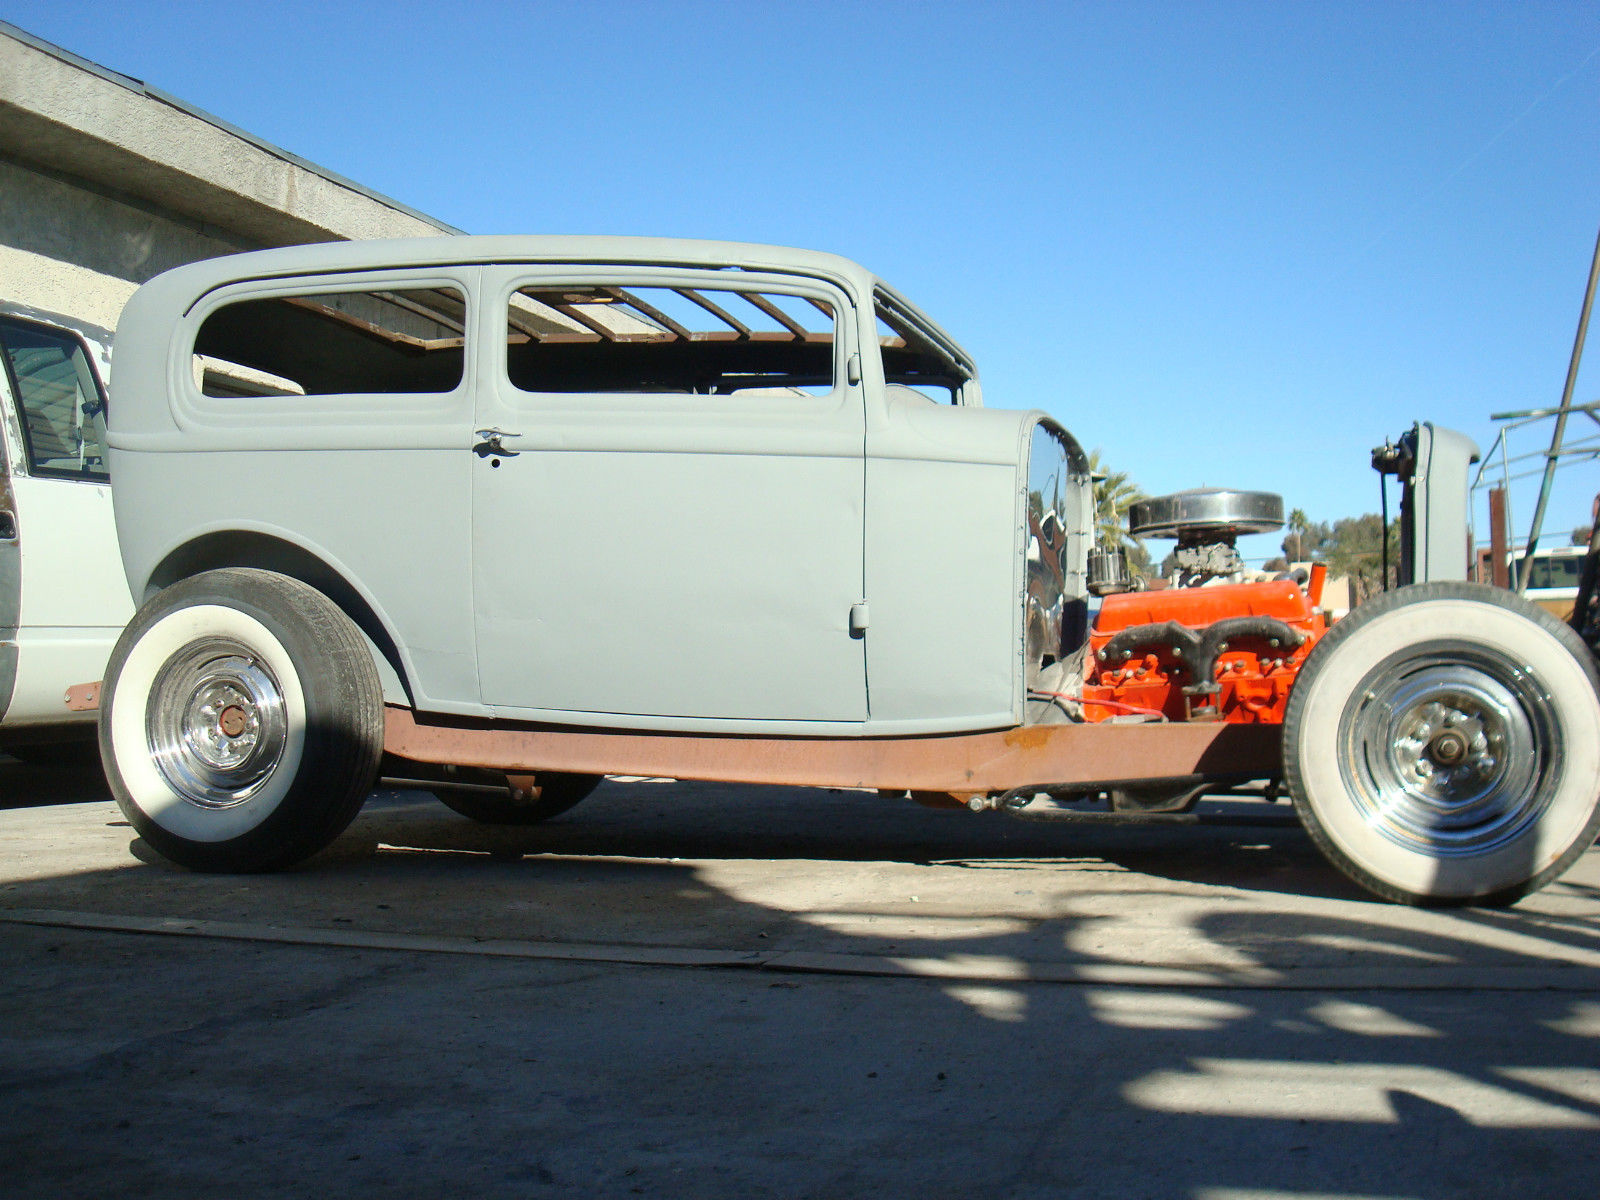 Ford Sedan Project Car For Sale